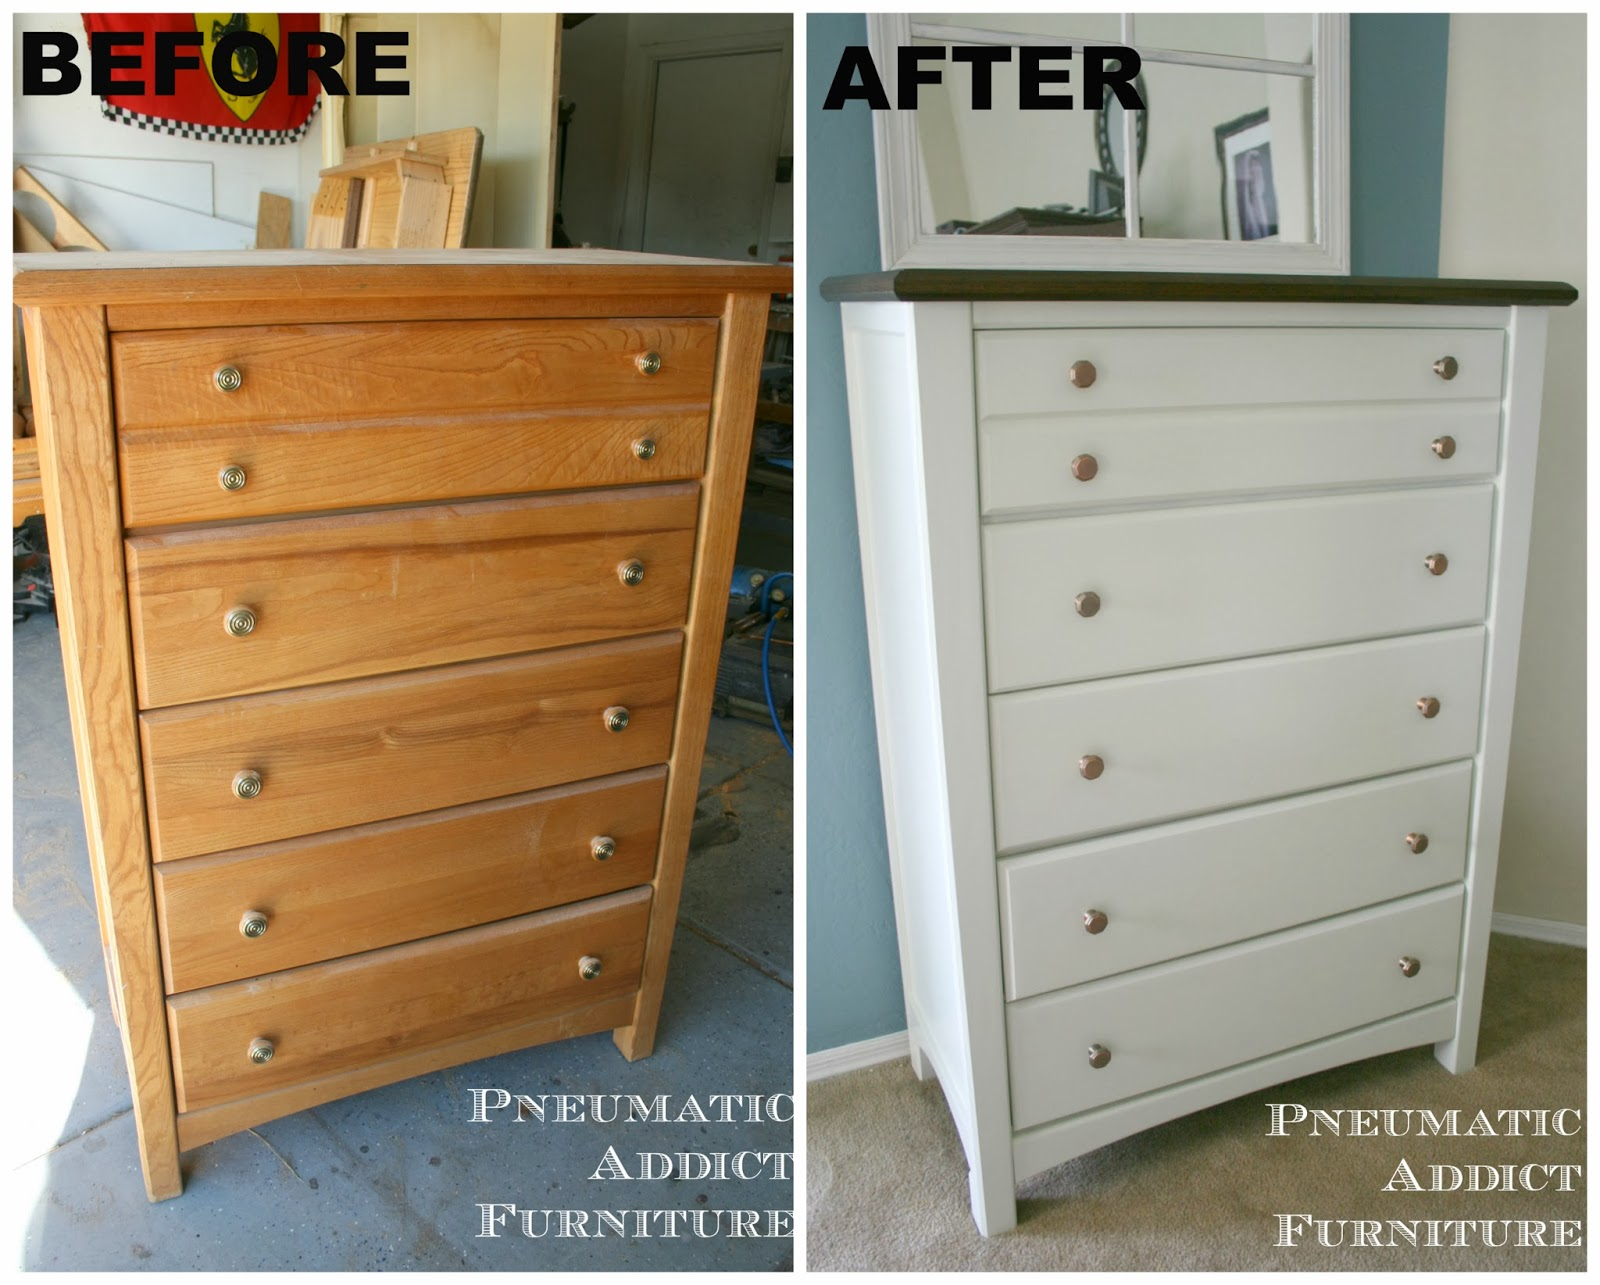 Pneumatic Addict Golden Oak Basset Dresser Make Over Sub Title The 90 39 S Are Awesome